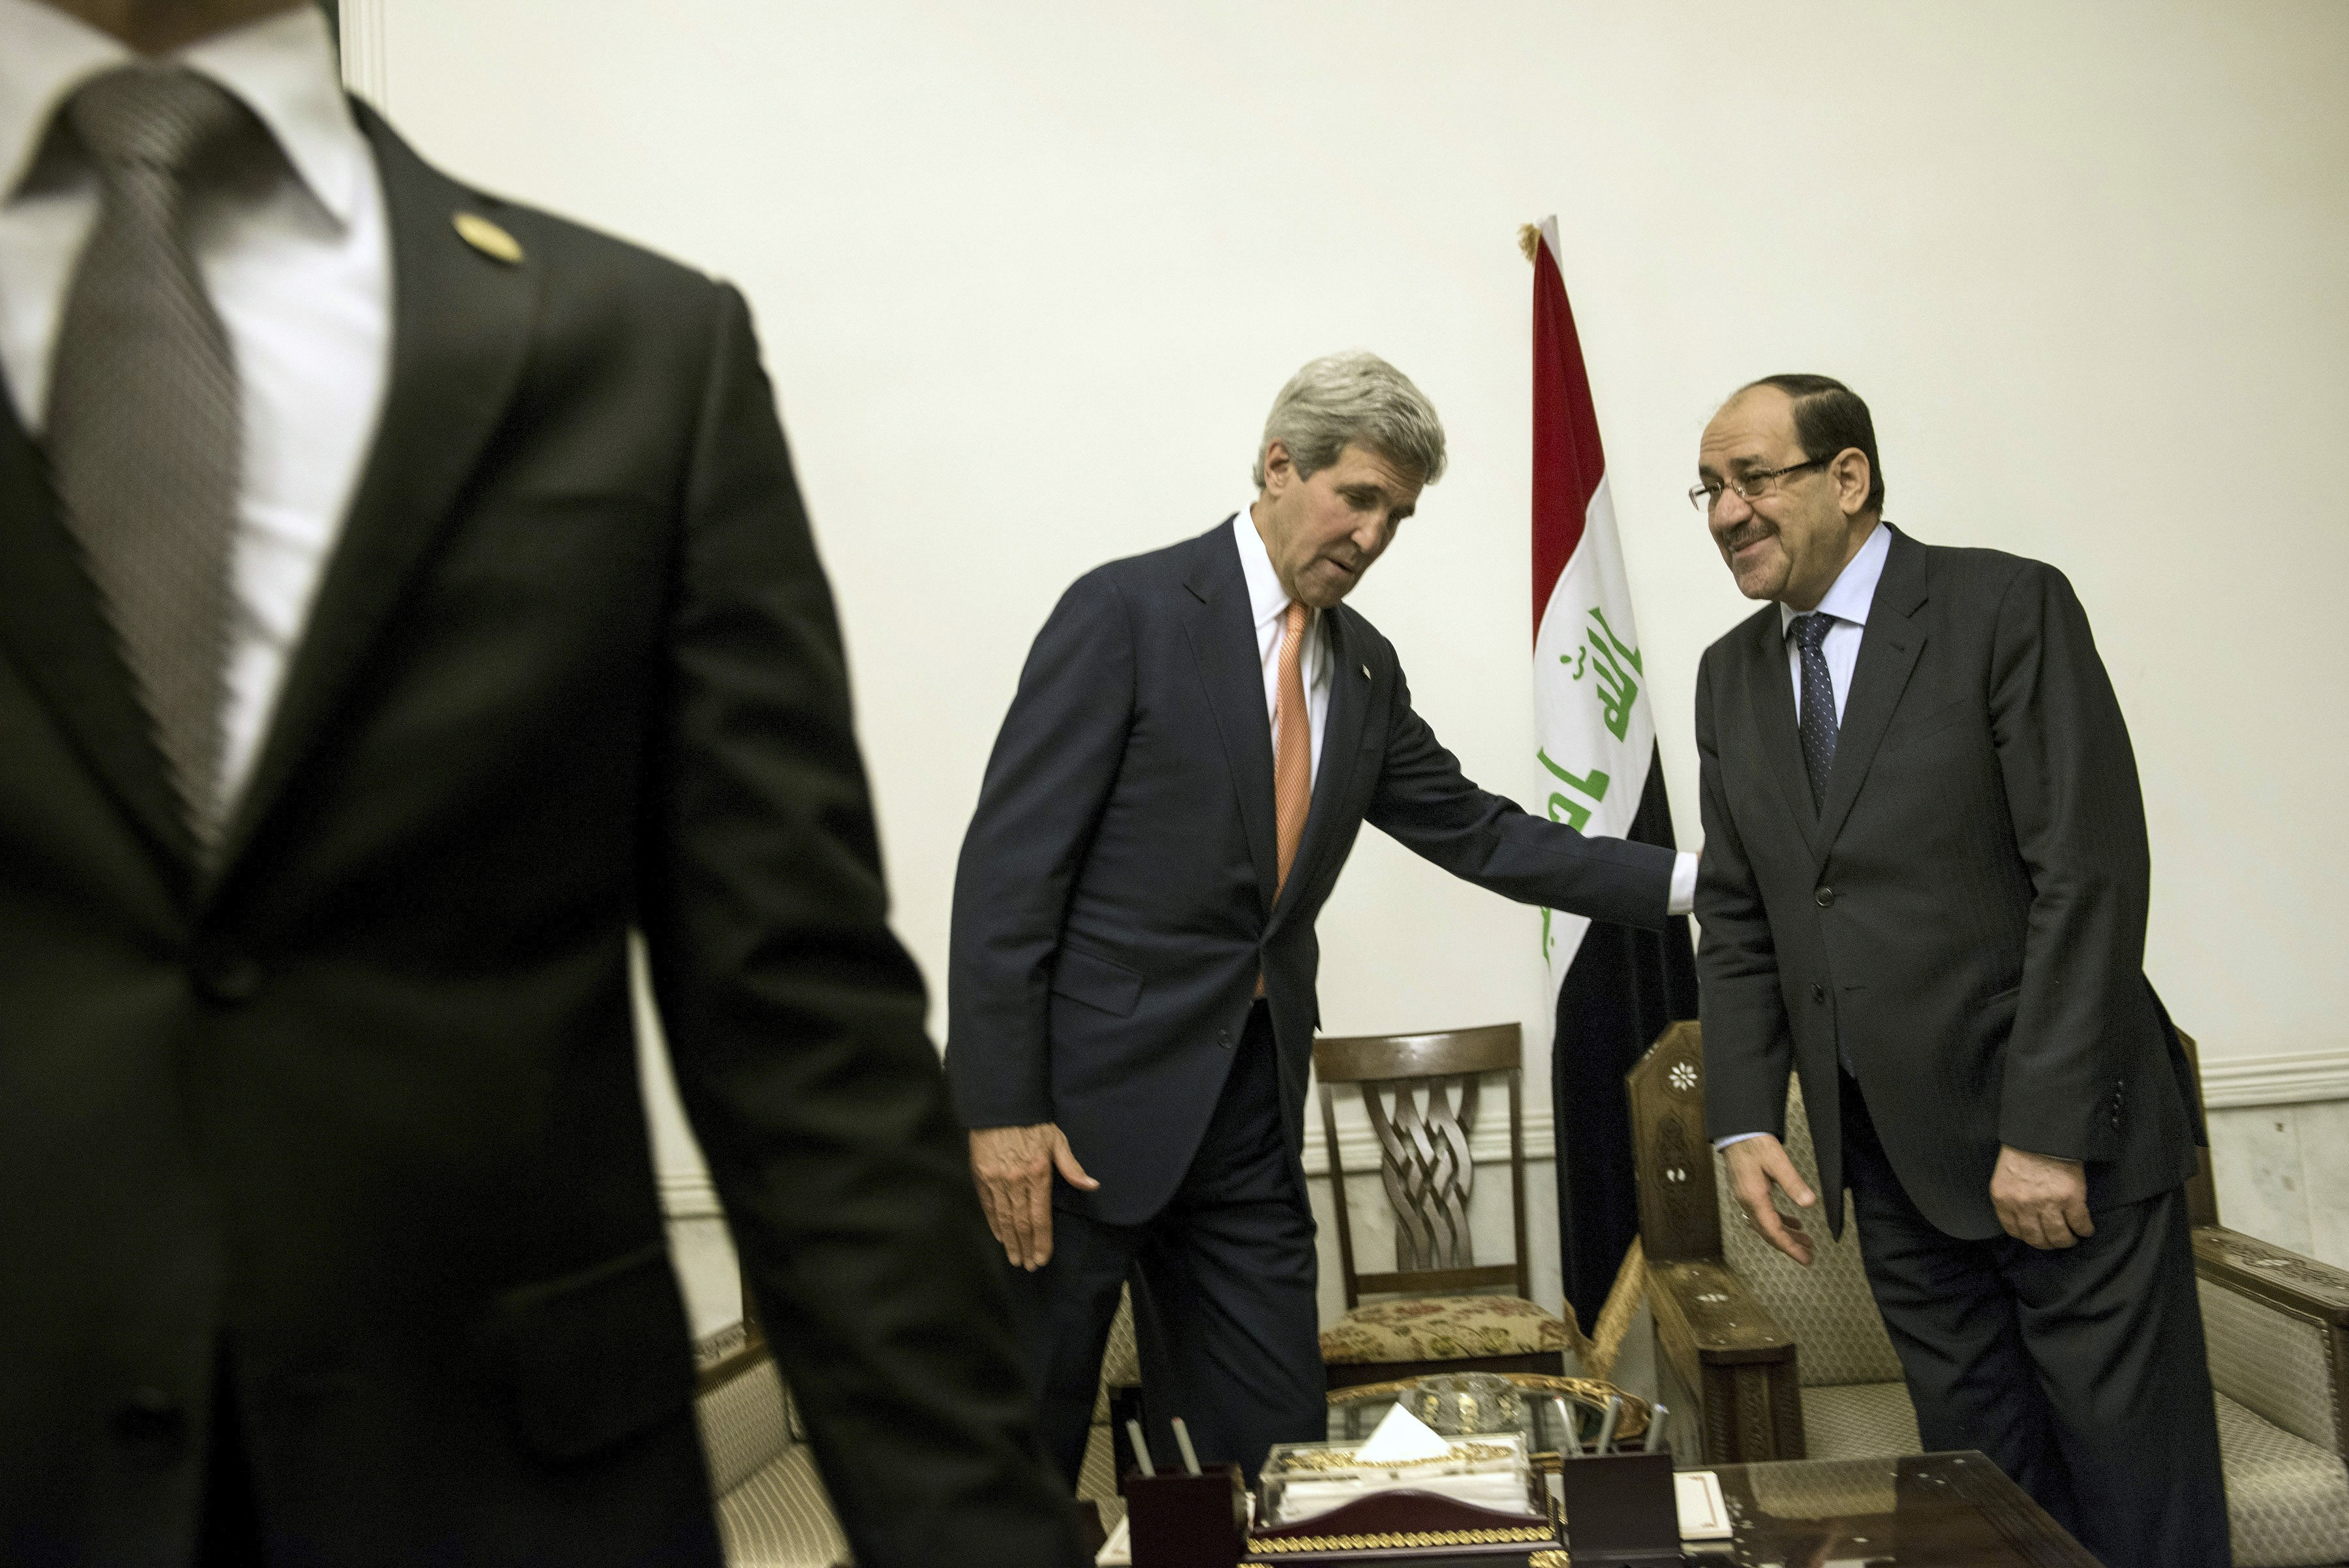 U.S. Secretary of State John Kerry meets with Iraqi Prime Minister Nouri al-Maliki on Monday. Kerry wanted to urge the Iraqis to form a new, inclusive government.